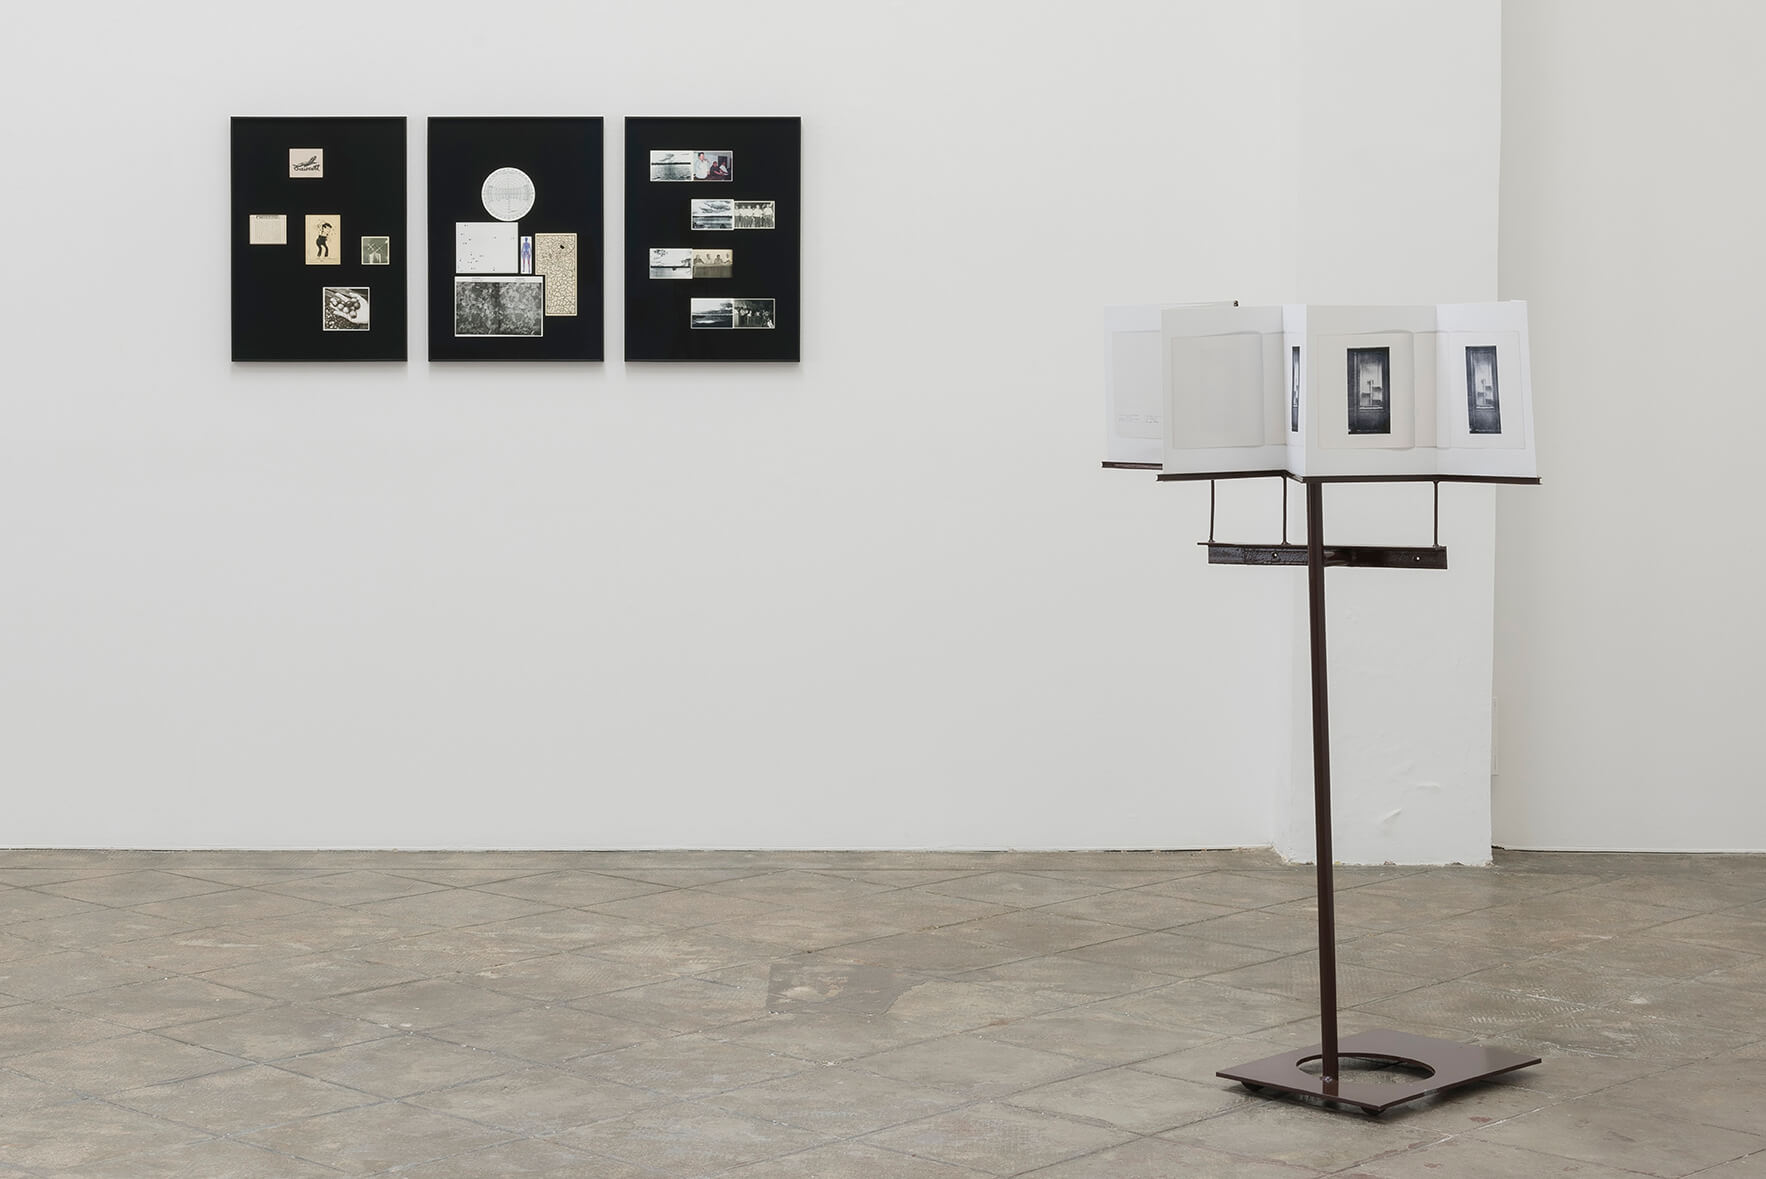 Installation view: Accrochage #3: Footnote Nº 10, ProjecteSD | Accrochage #3: Footnote nº 10 | ProjecteSD